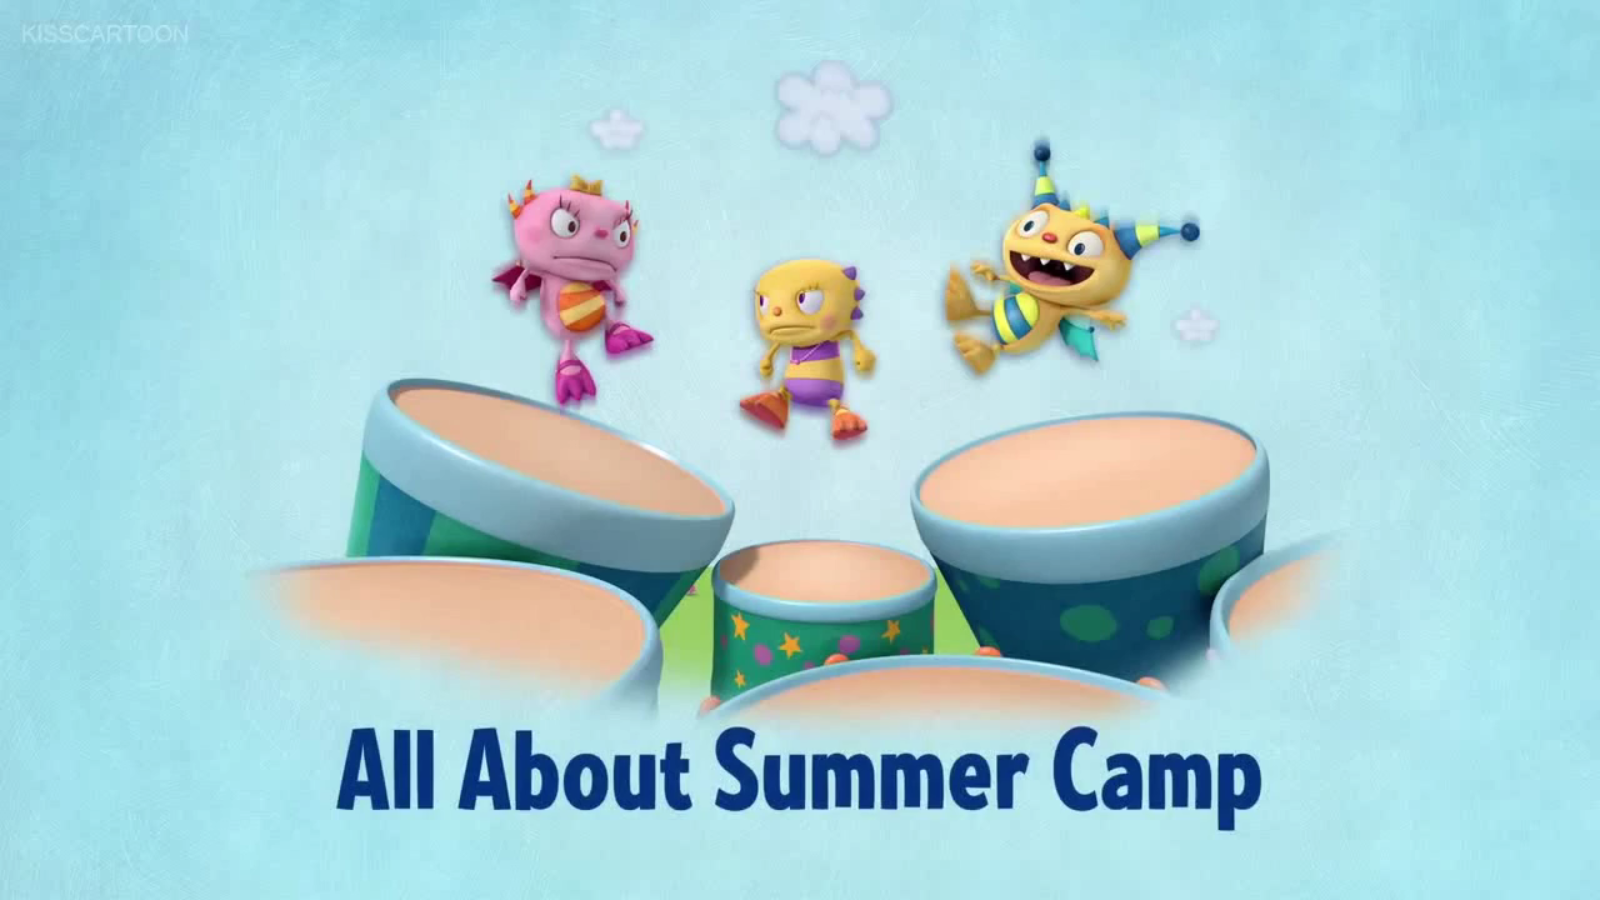 All About Summer Camp